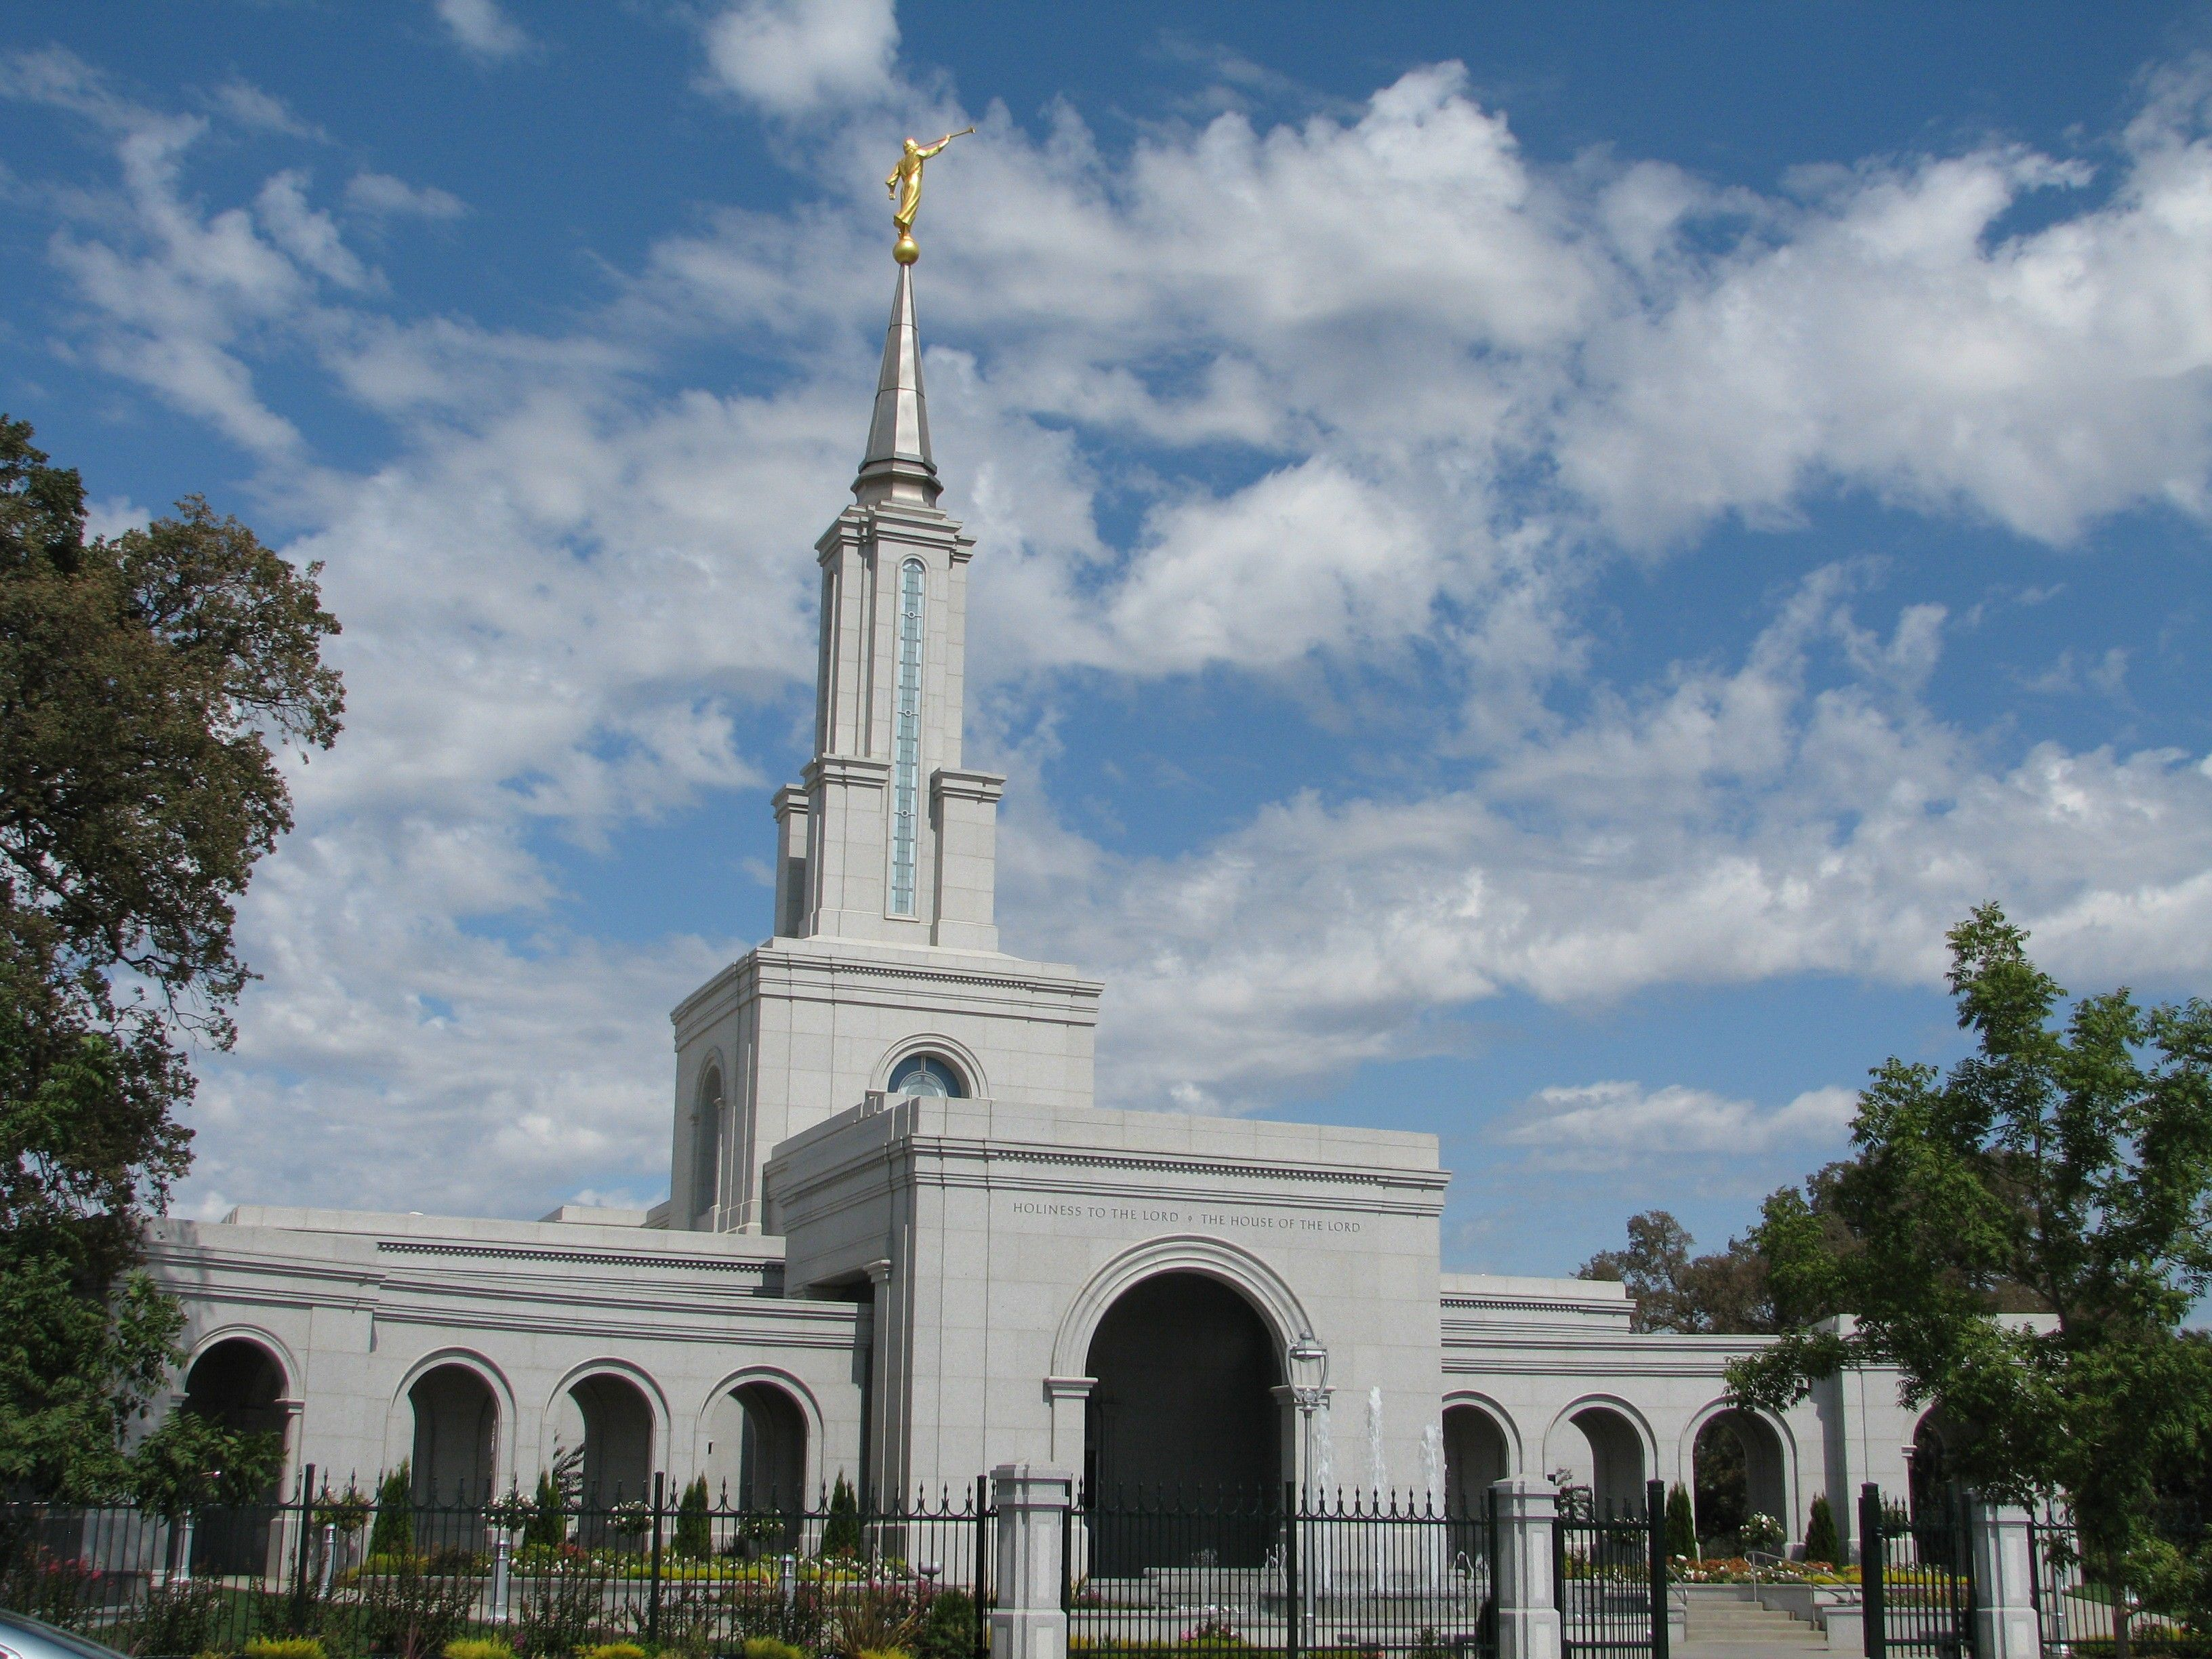 The Sacramento California Temple, including the entrance and scenery.